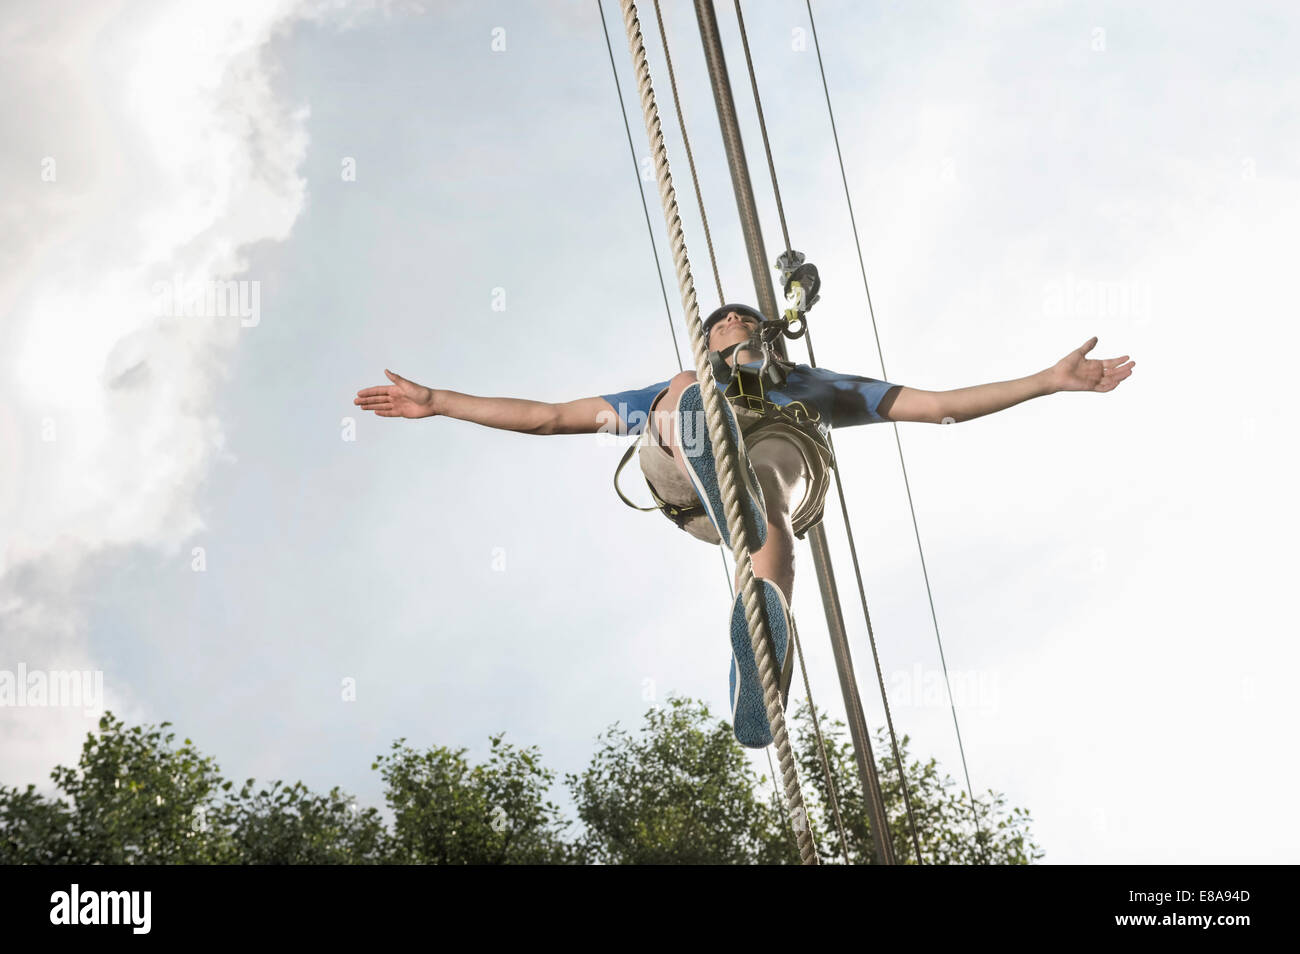 teenager balancing in a climbing crag - Stock Image